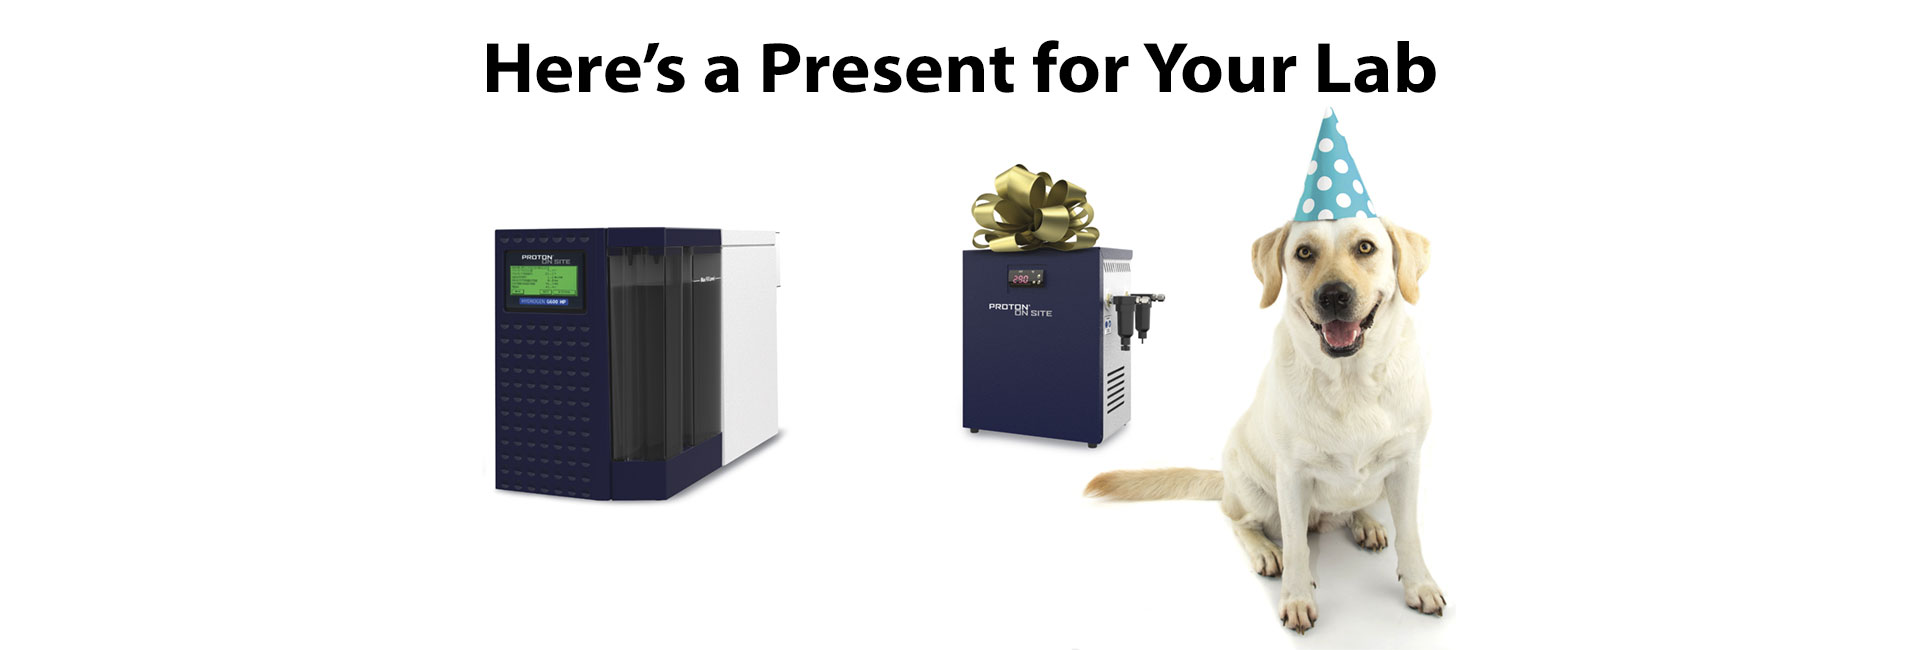 A Present for Your Lab